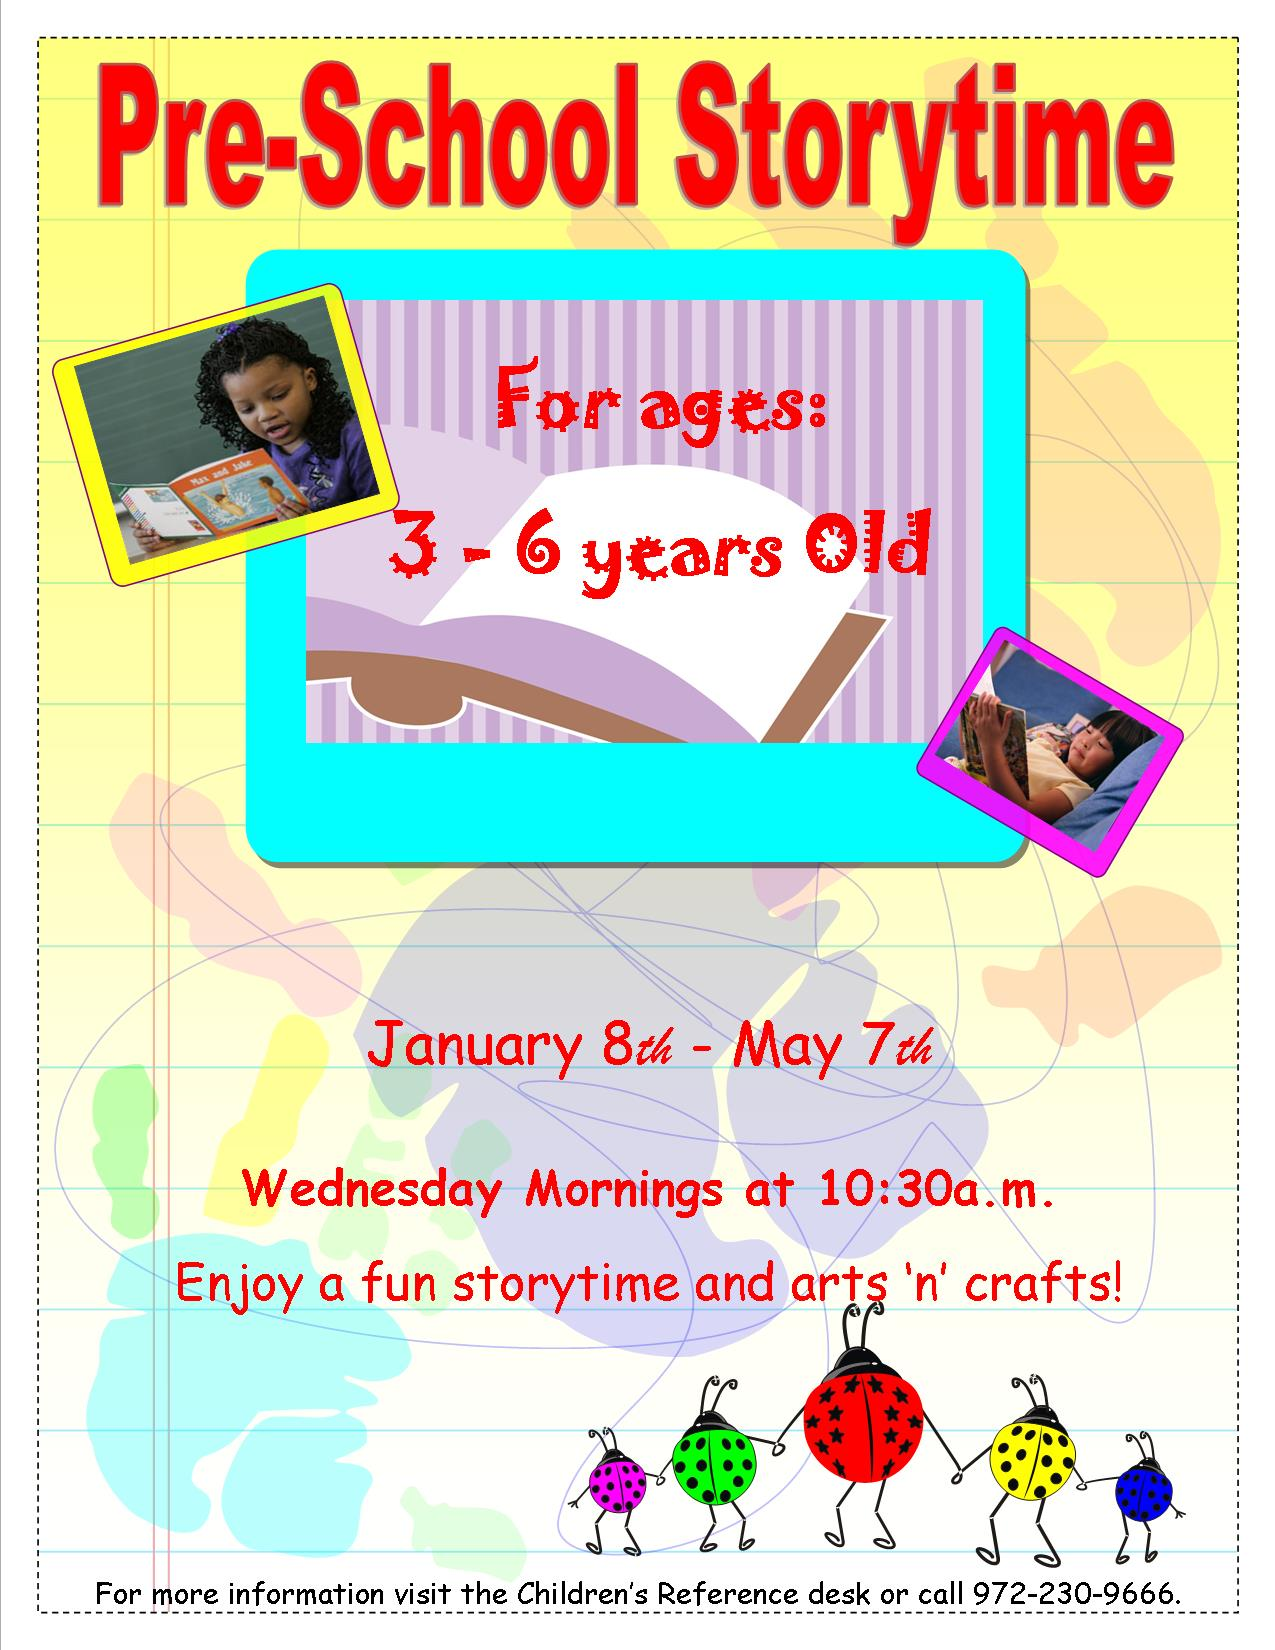 Preschool Story Time Flyer 2014.jpg